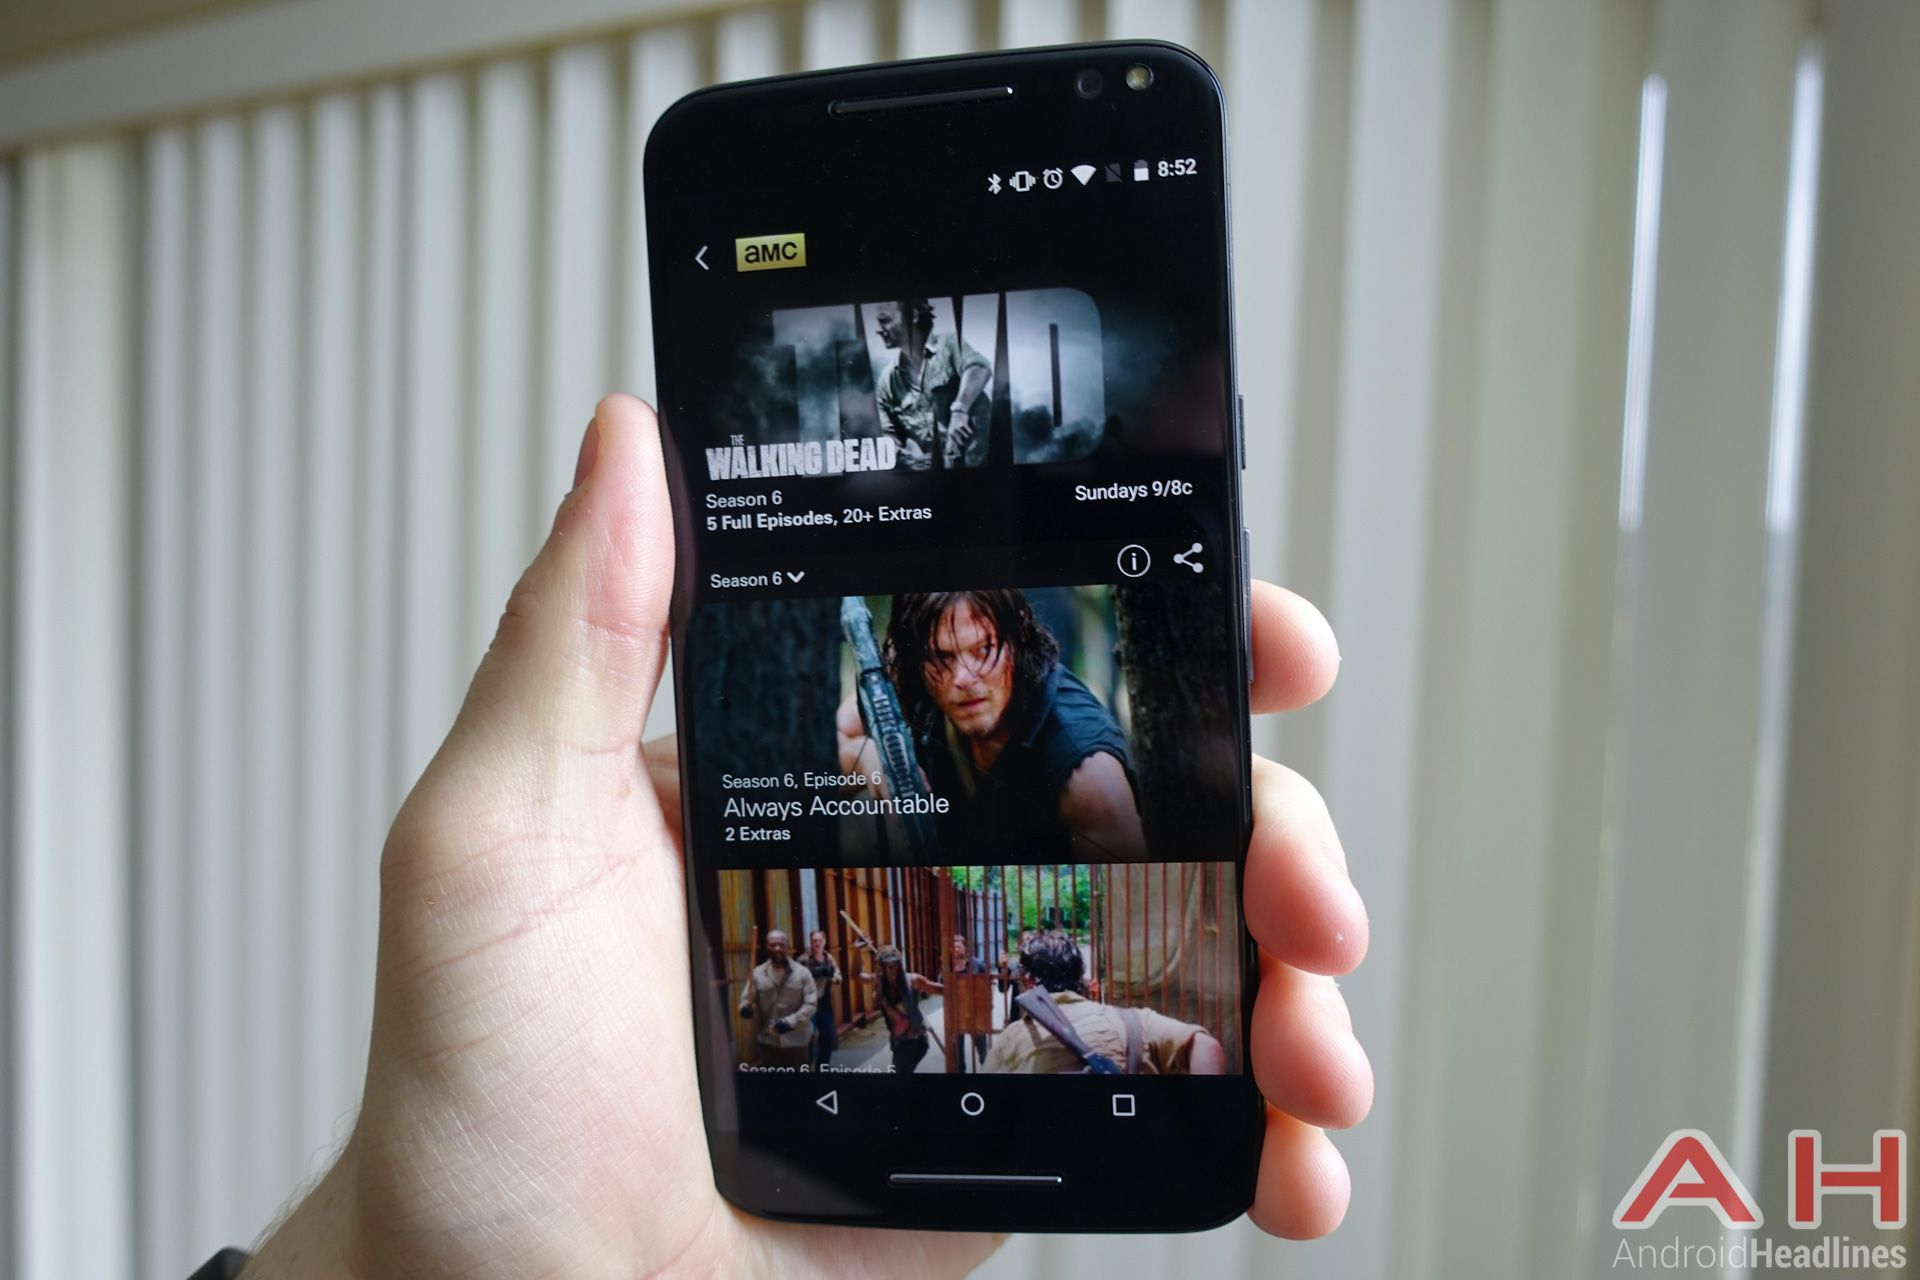 Keep up to date with The Walking Dead on the new AMC App